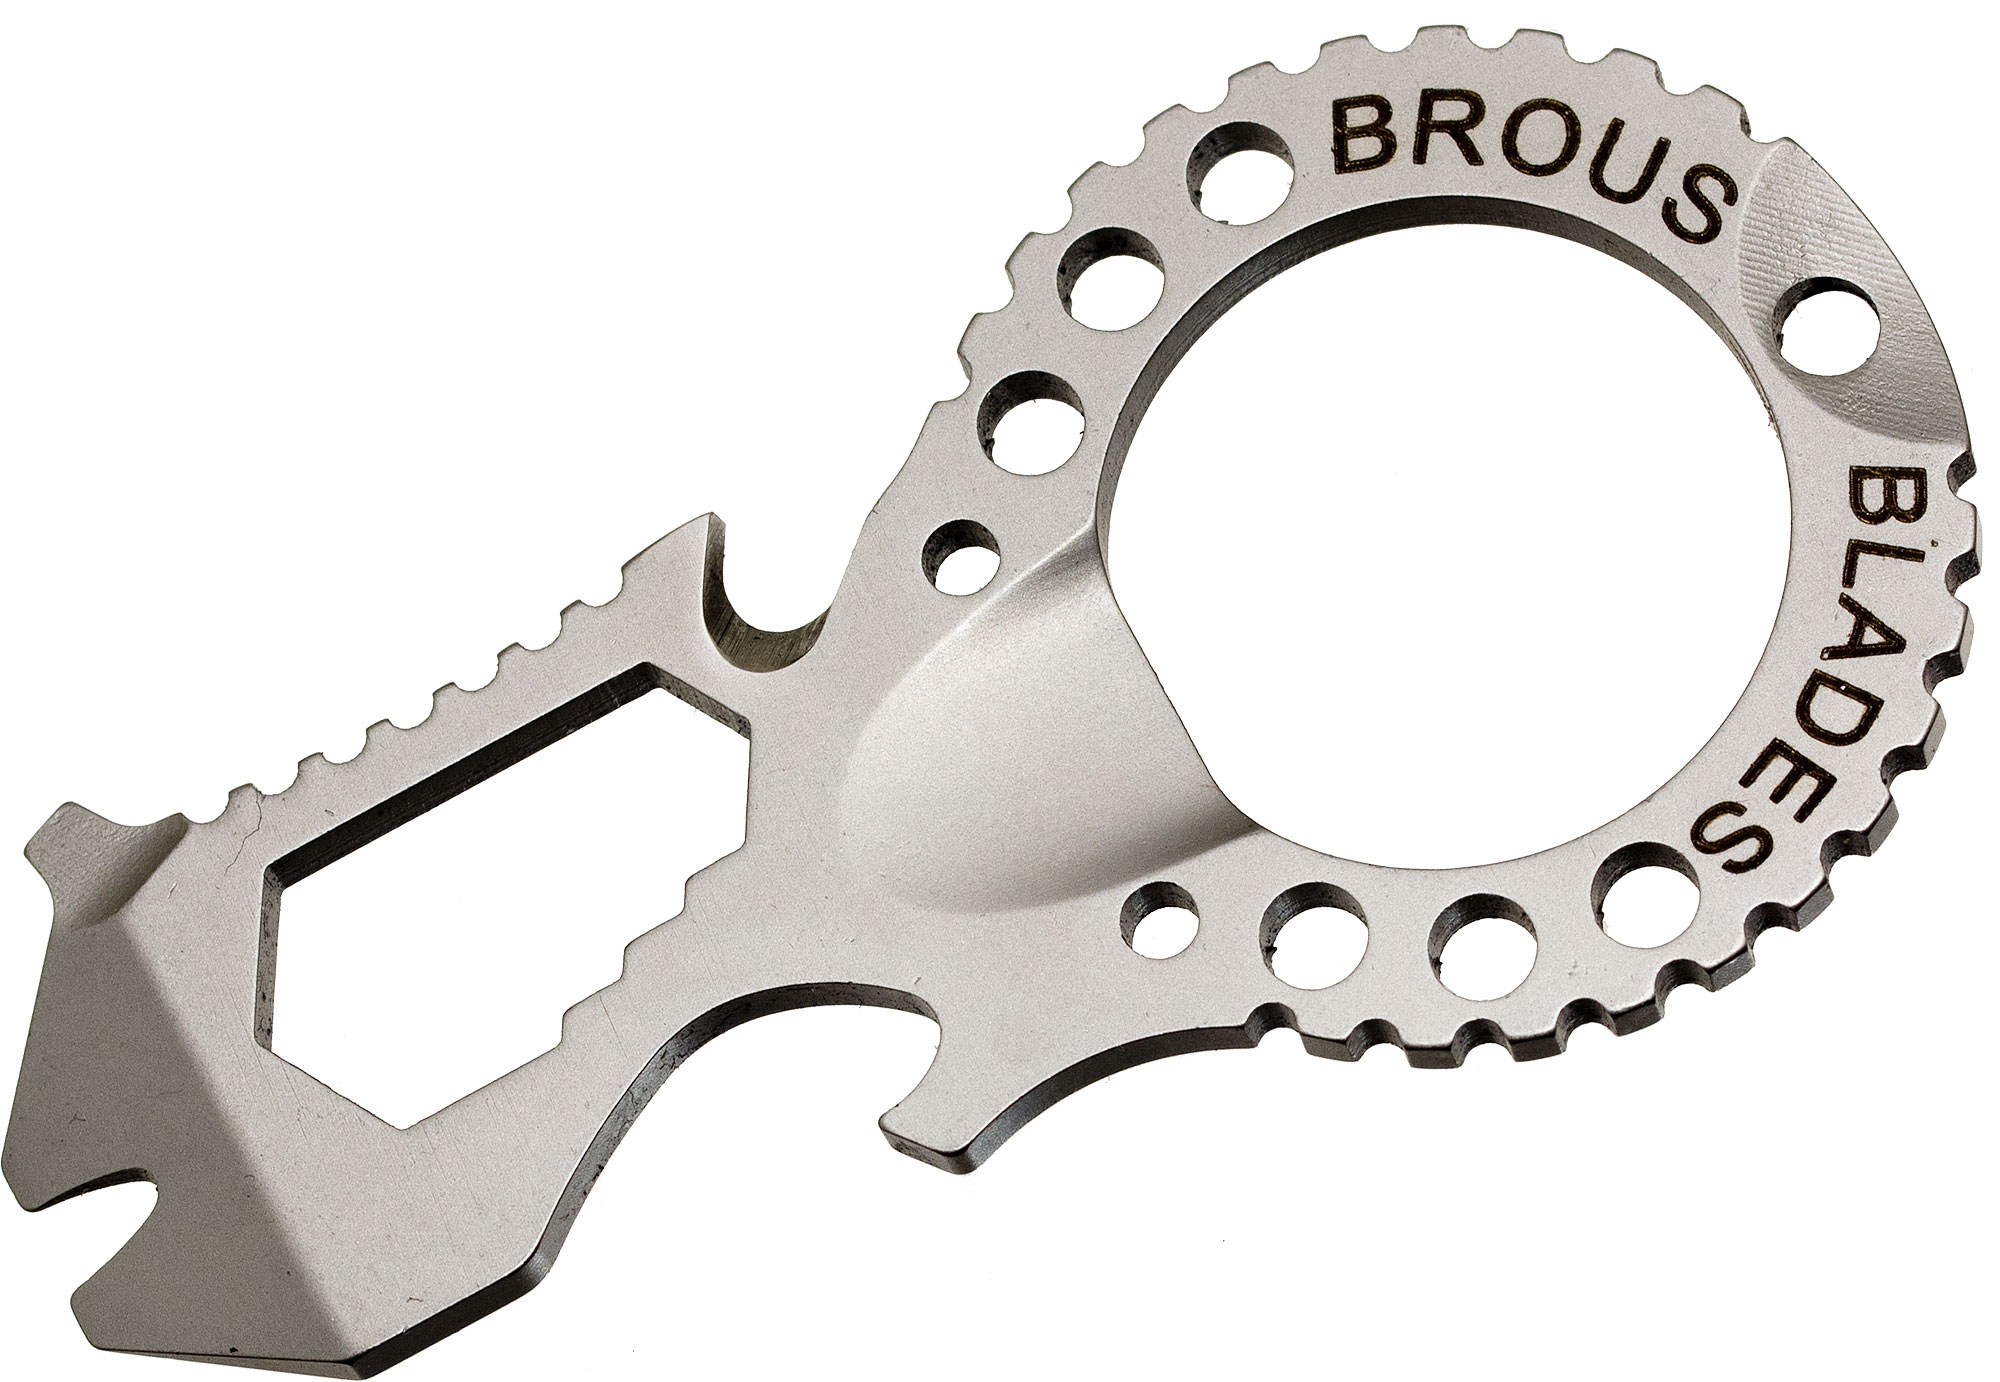 Buy BMT Brous Multi-Tool at KnifeCenter